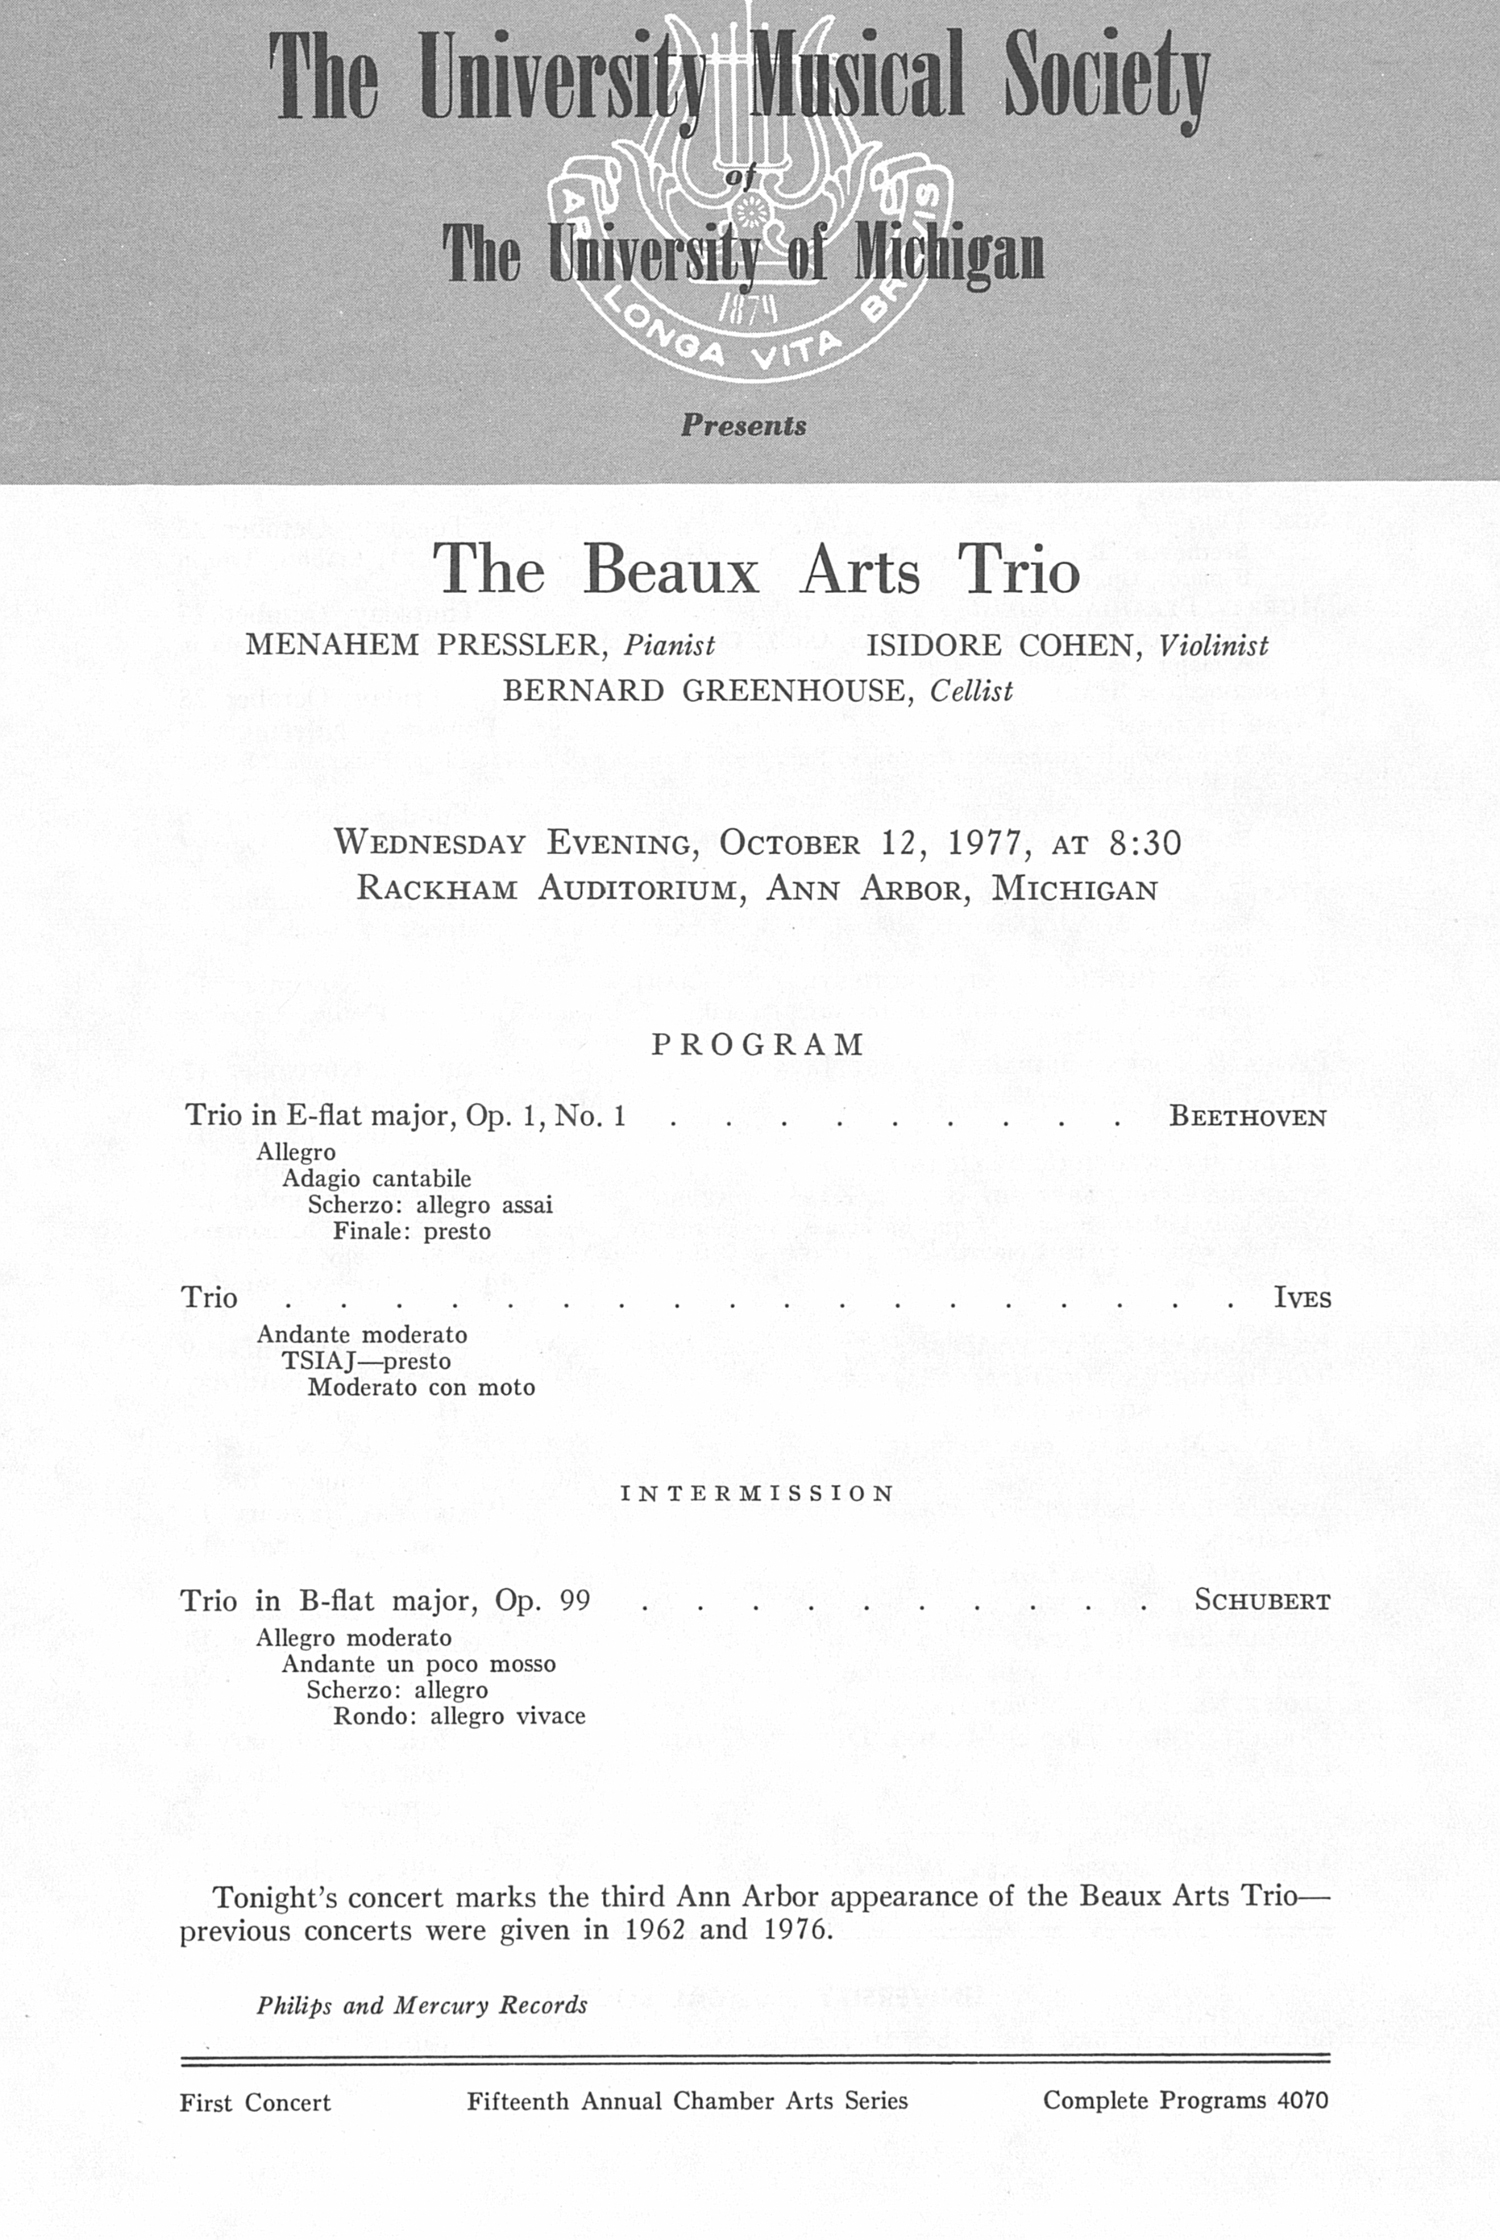 UMS Concert Program, October 12, 1977: The Beaux Arts Trio --  image